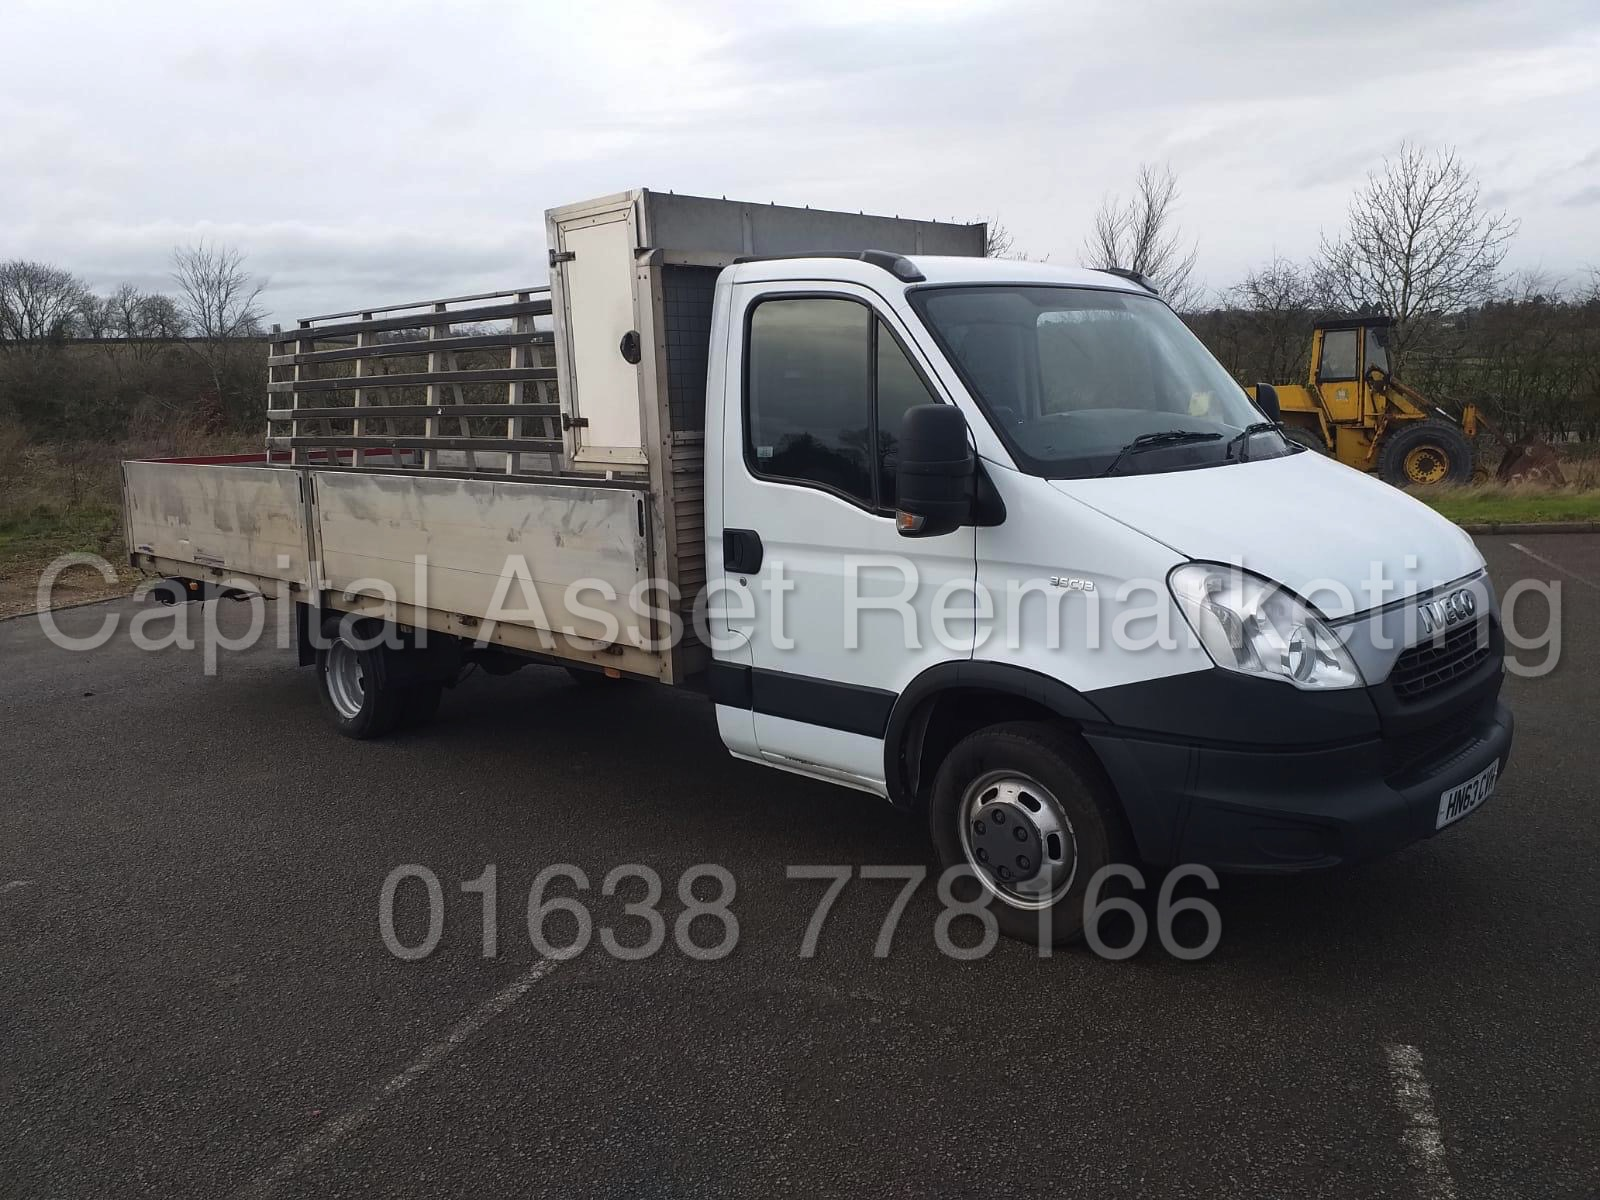 IVECO DAILY 35C13 *XLWB - ALLOY DROPSIDE* (2014 MODEL) '2.3 DIESEL - 127 BHP - AUTOMATIC' (3500 KG) - Image 2 of 20